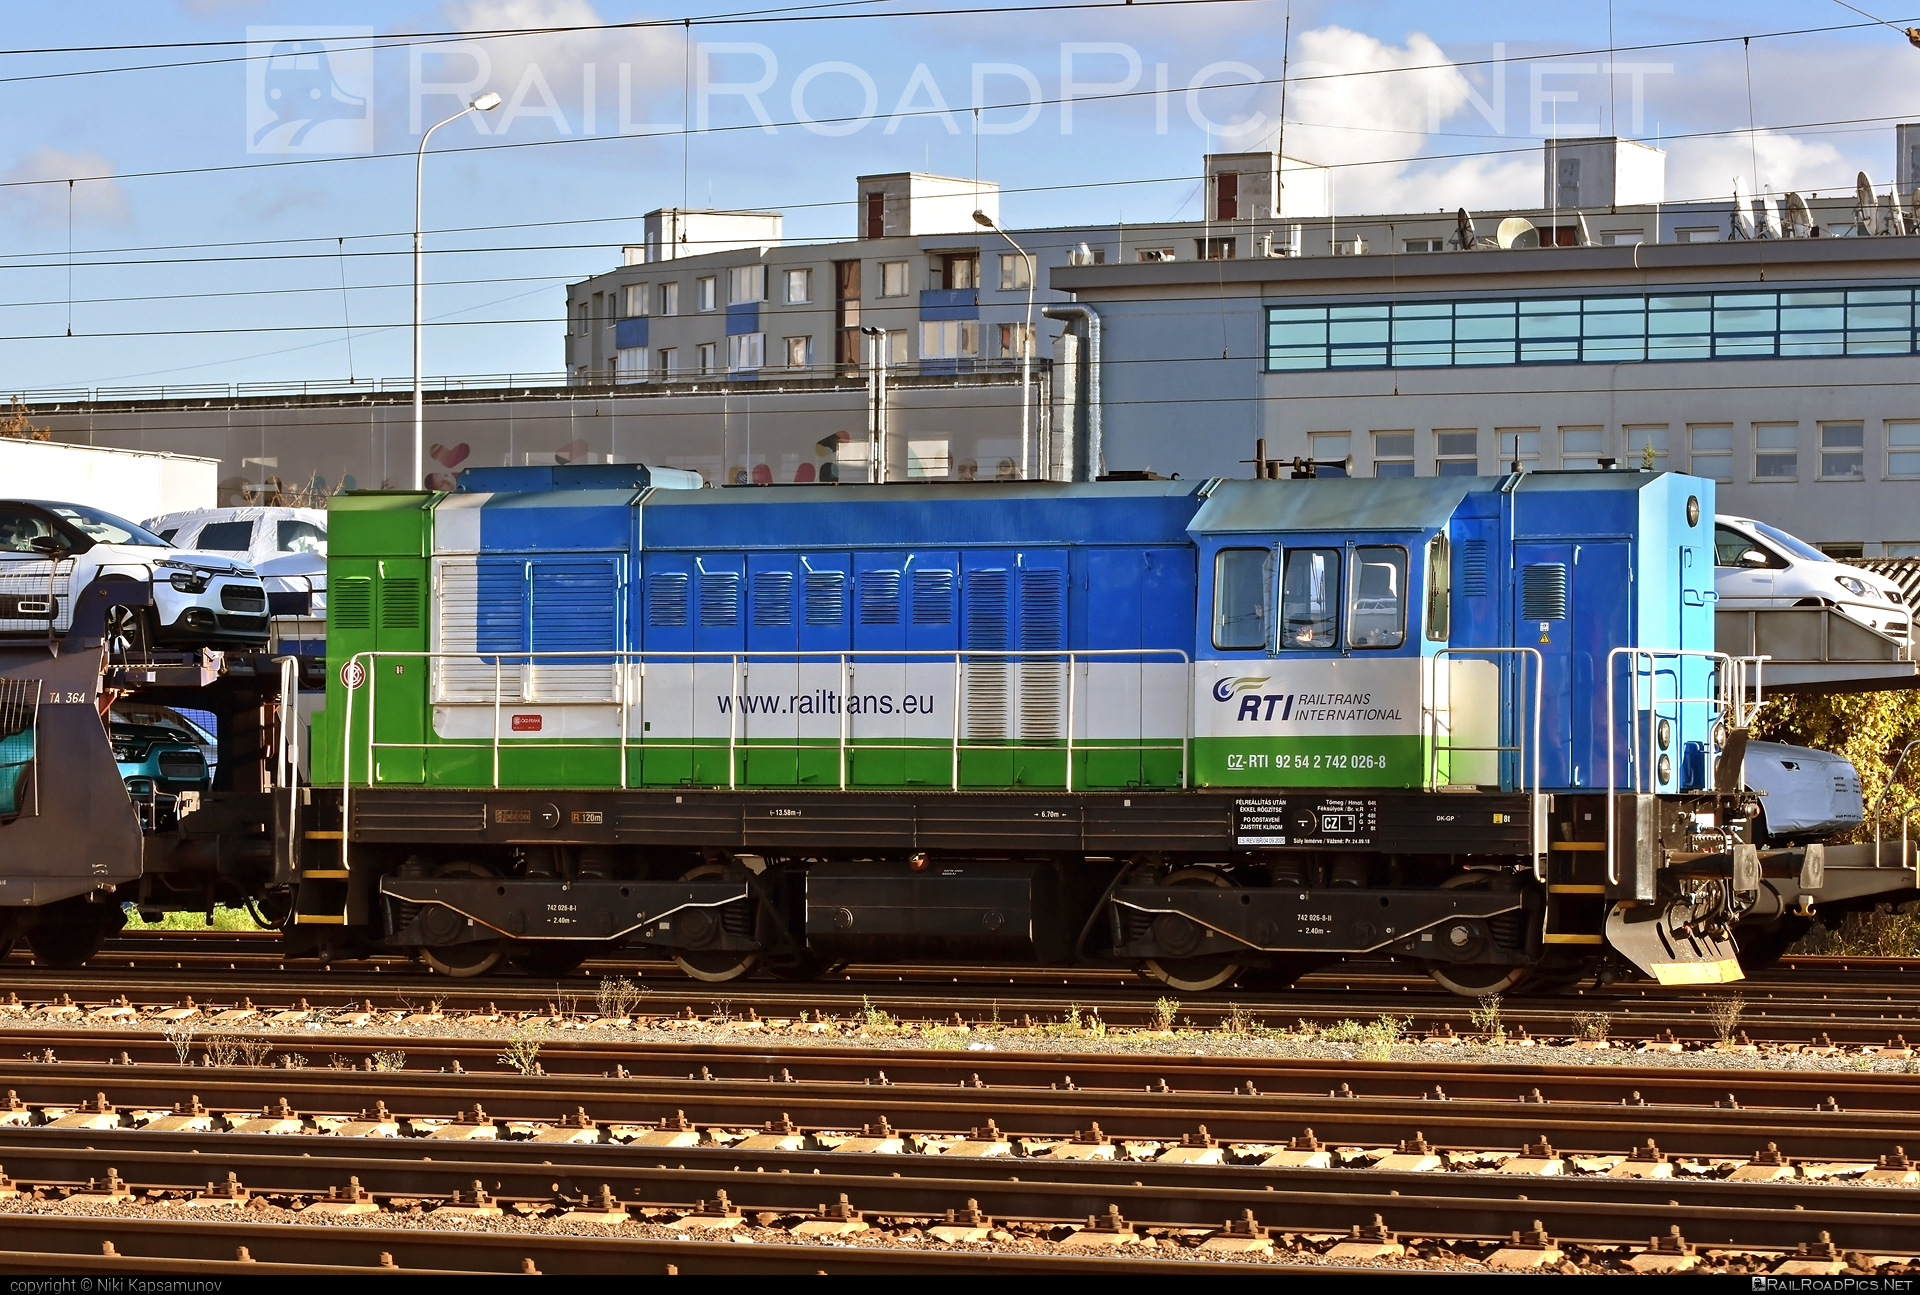 ČKD T 466.2 (742) - 742 026-8 operated by Railtrans International, s.r.o #ckd #ckd4662 #ckd742 #ckdt4662 #railtrans #rti